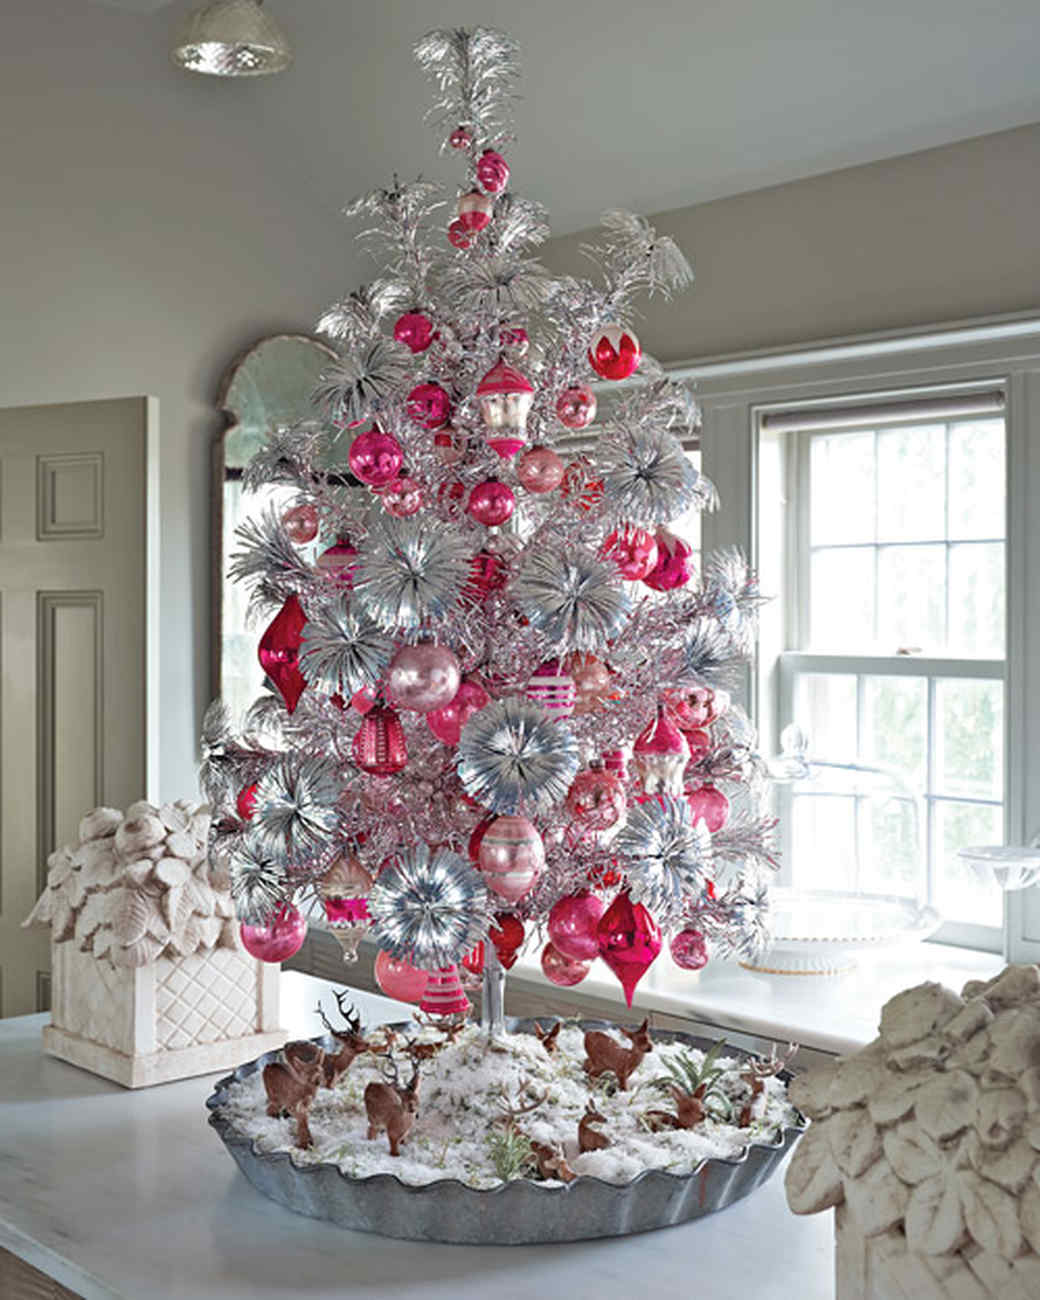 : decorating a white christmas tree ideas - www.pureclipart.com